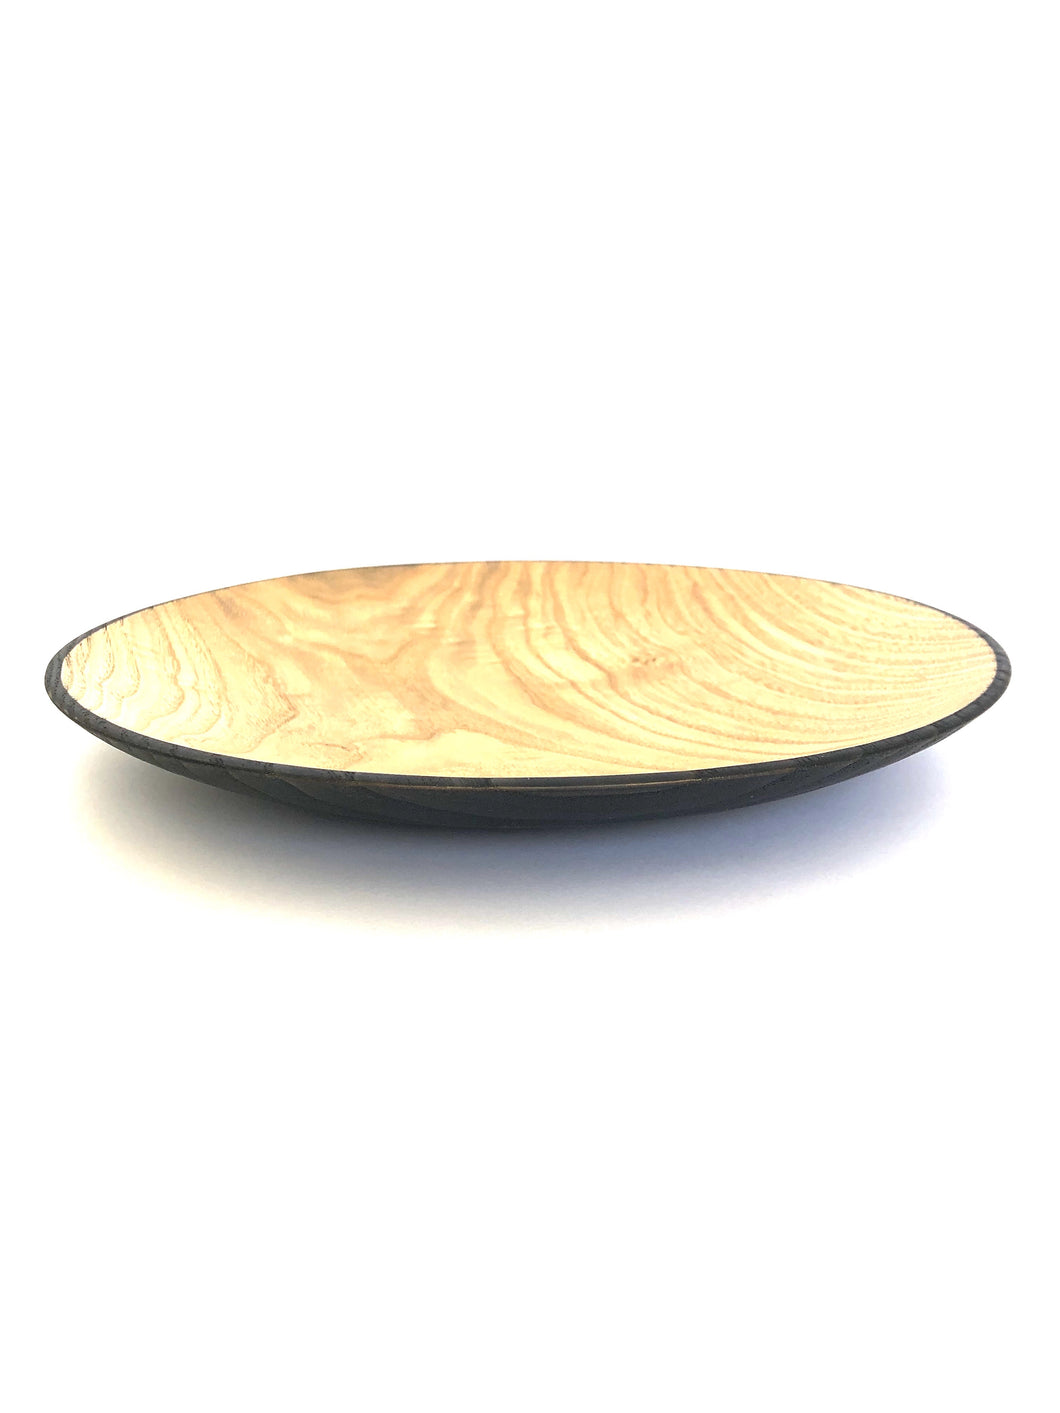 Japanese Handcrafted Wooden Iron Dyed Dual Coloured Plate Chestnut